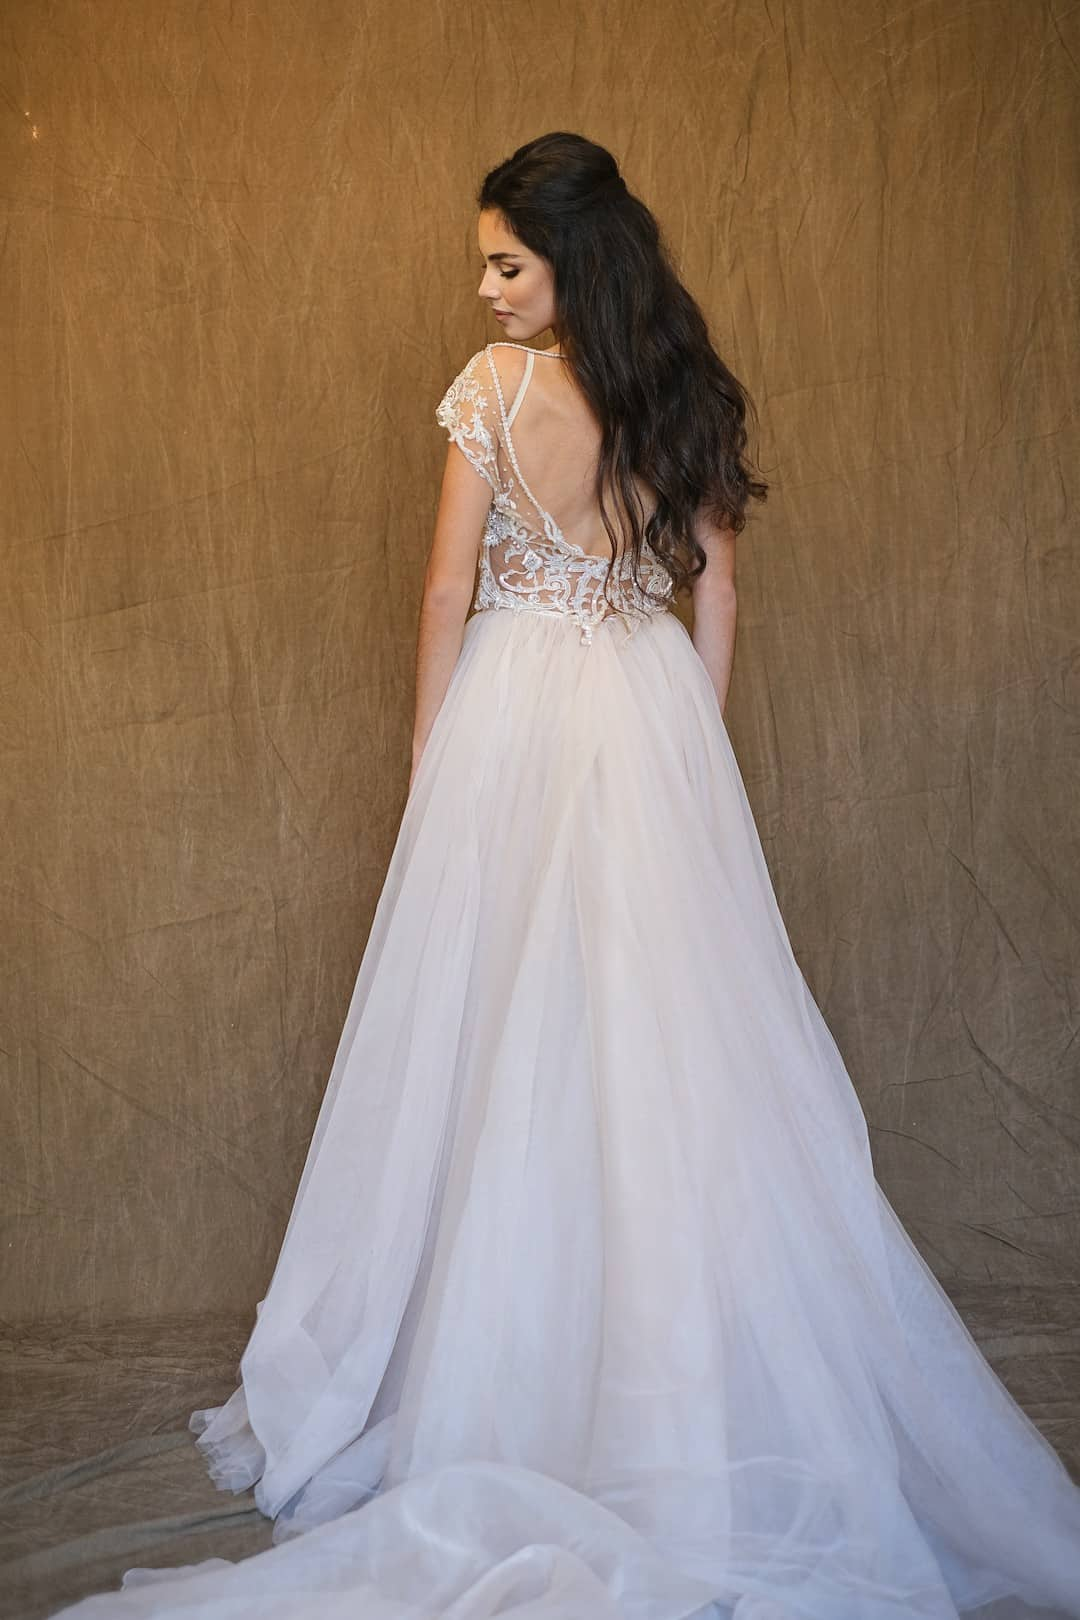 Haute Couture Wedding Dresses - Galia Lahav - Gala 607 - back